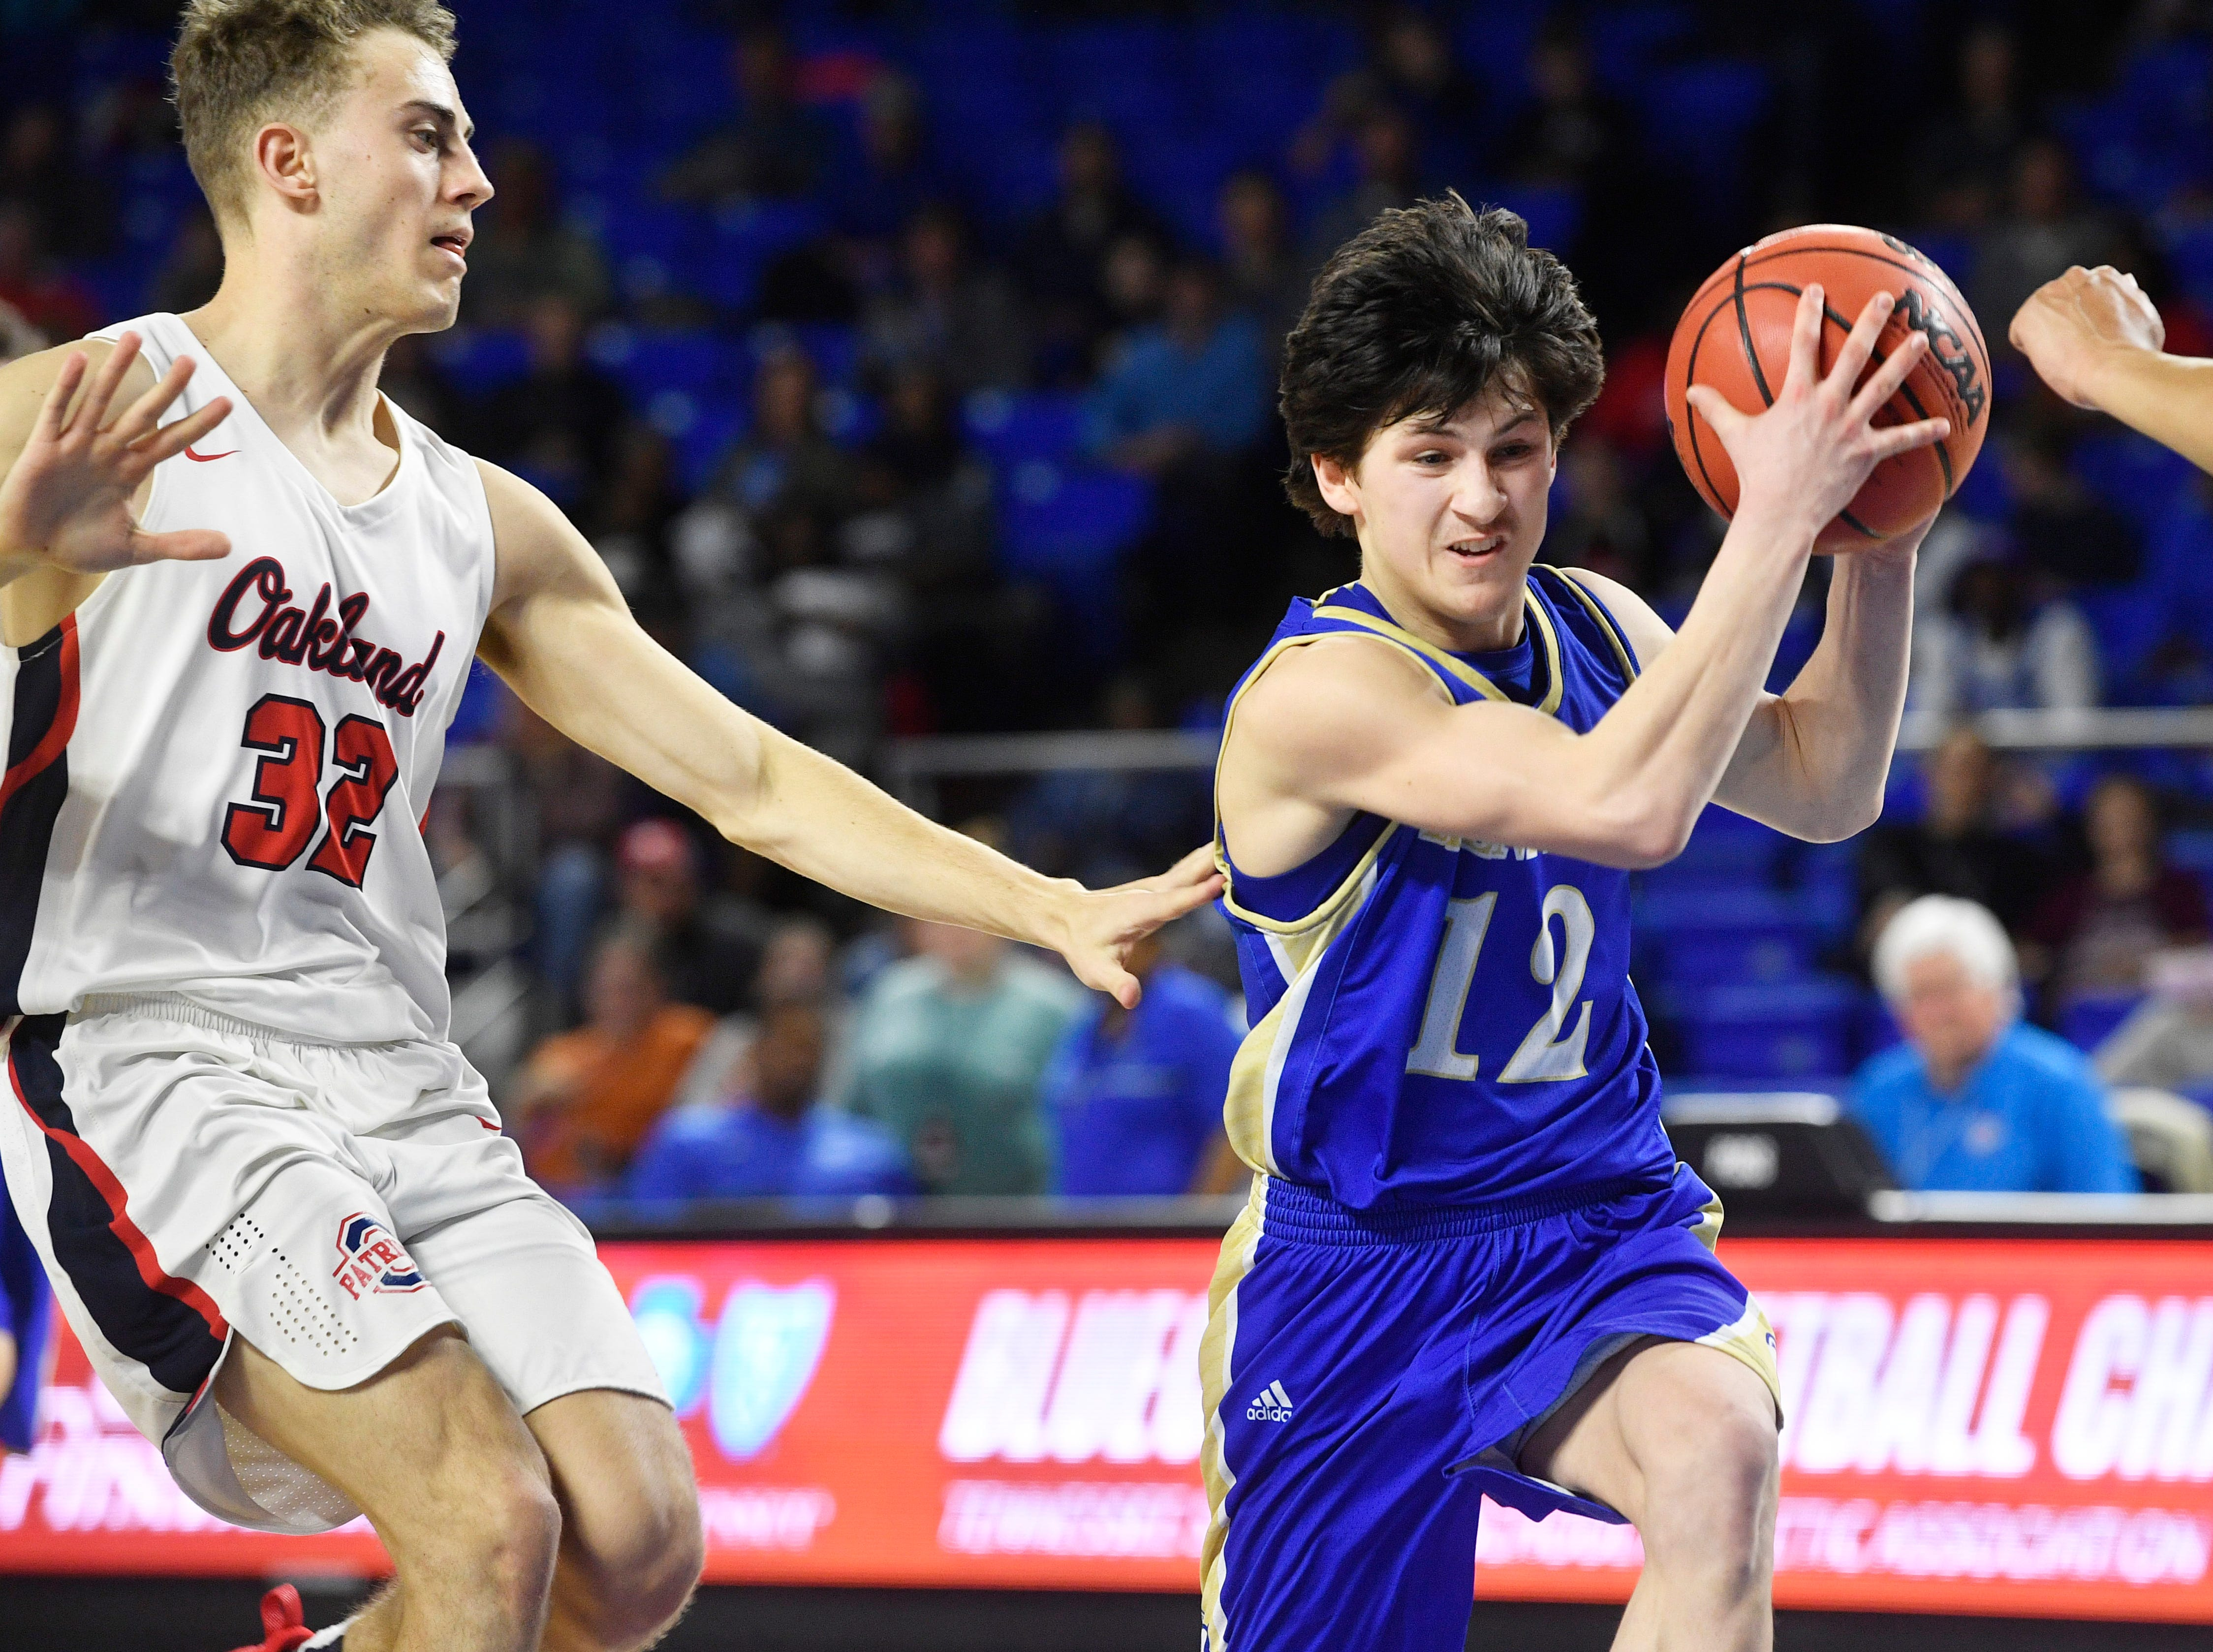 Brentwood's Preston Moore (12) goes for the score as Brentwood plays Oakland in the TSSAA Class AAA quarterfinals Thursday, March 14, 2019, in Murfreesboro, Tenn.